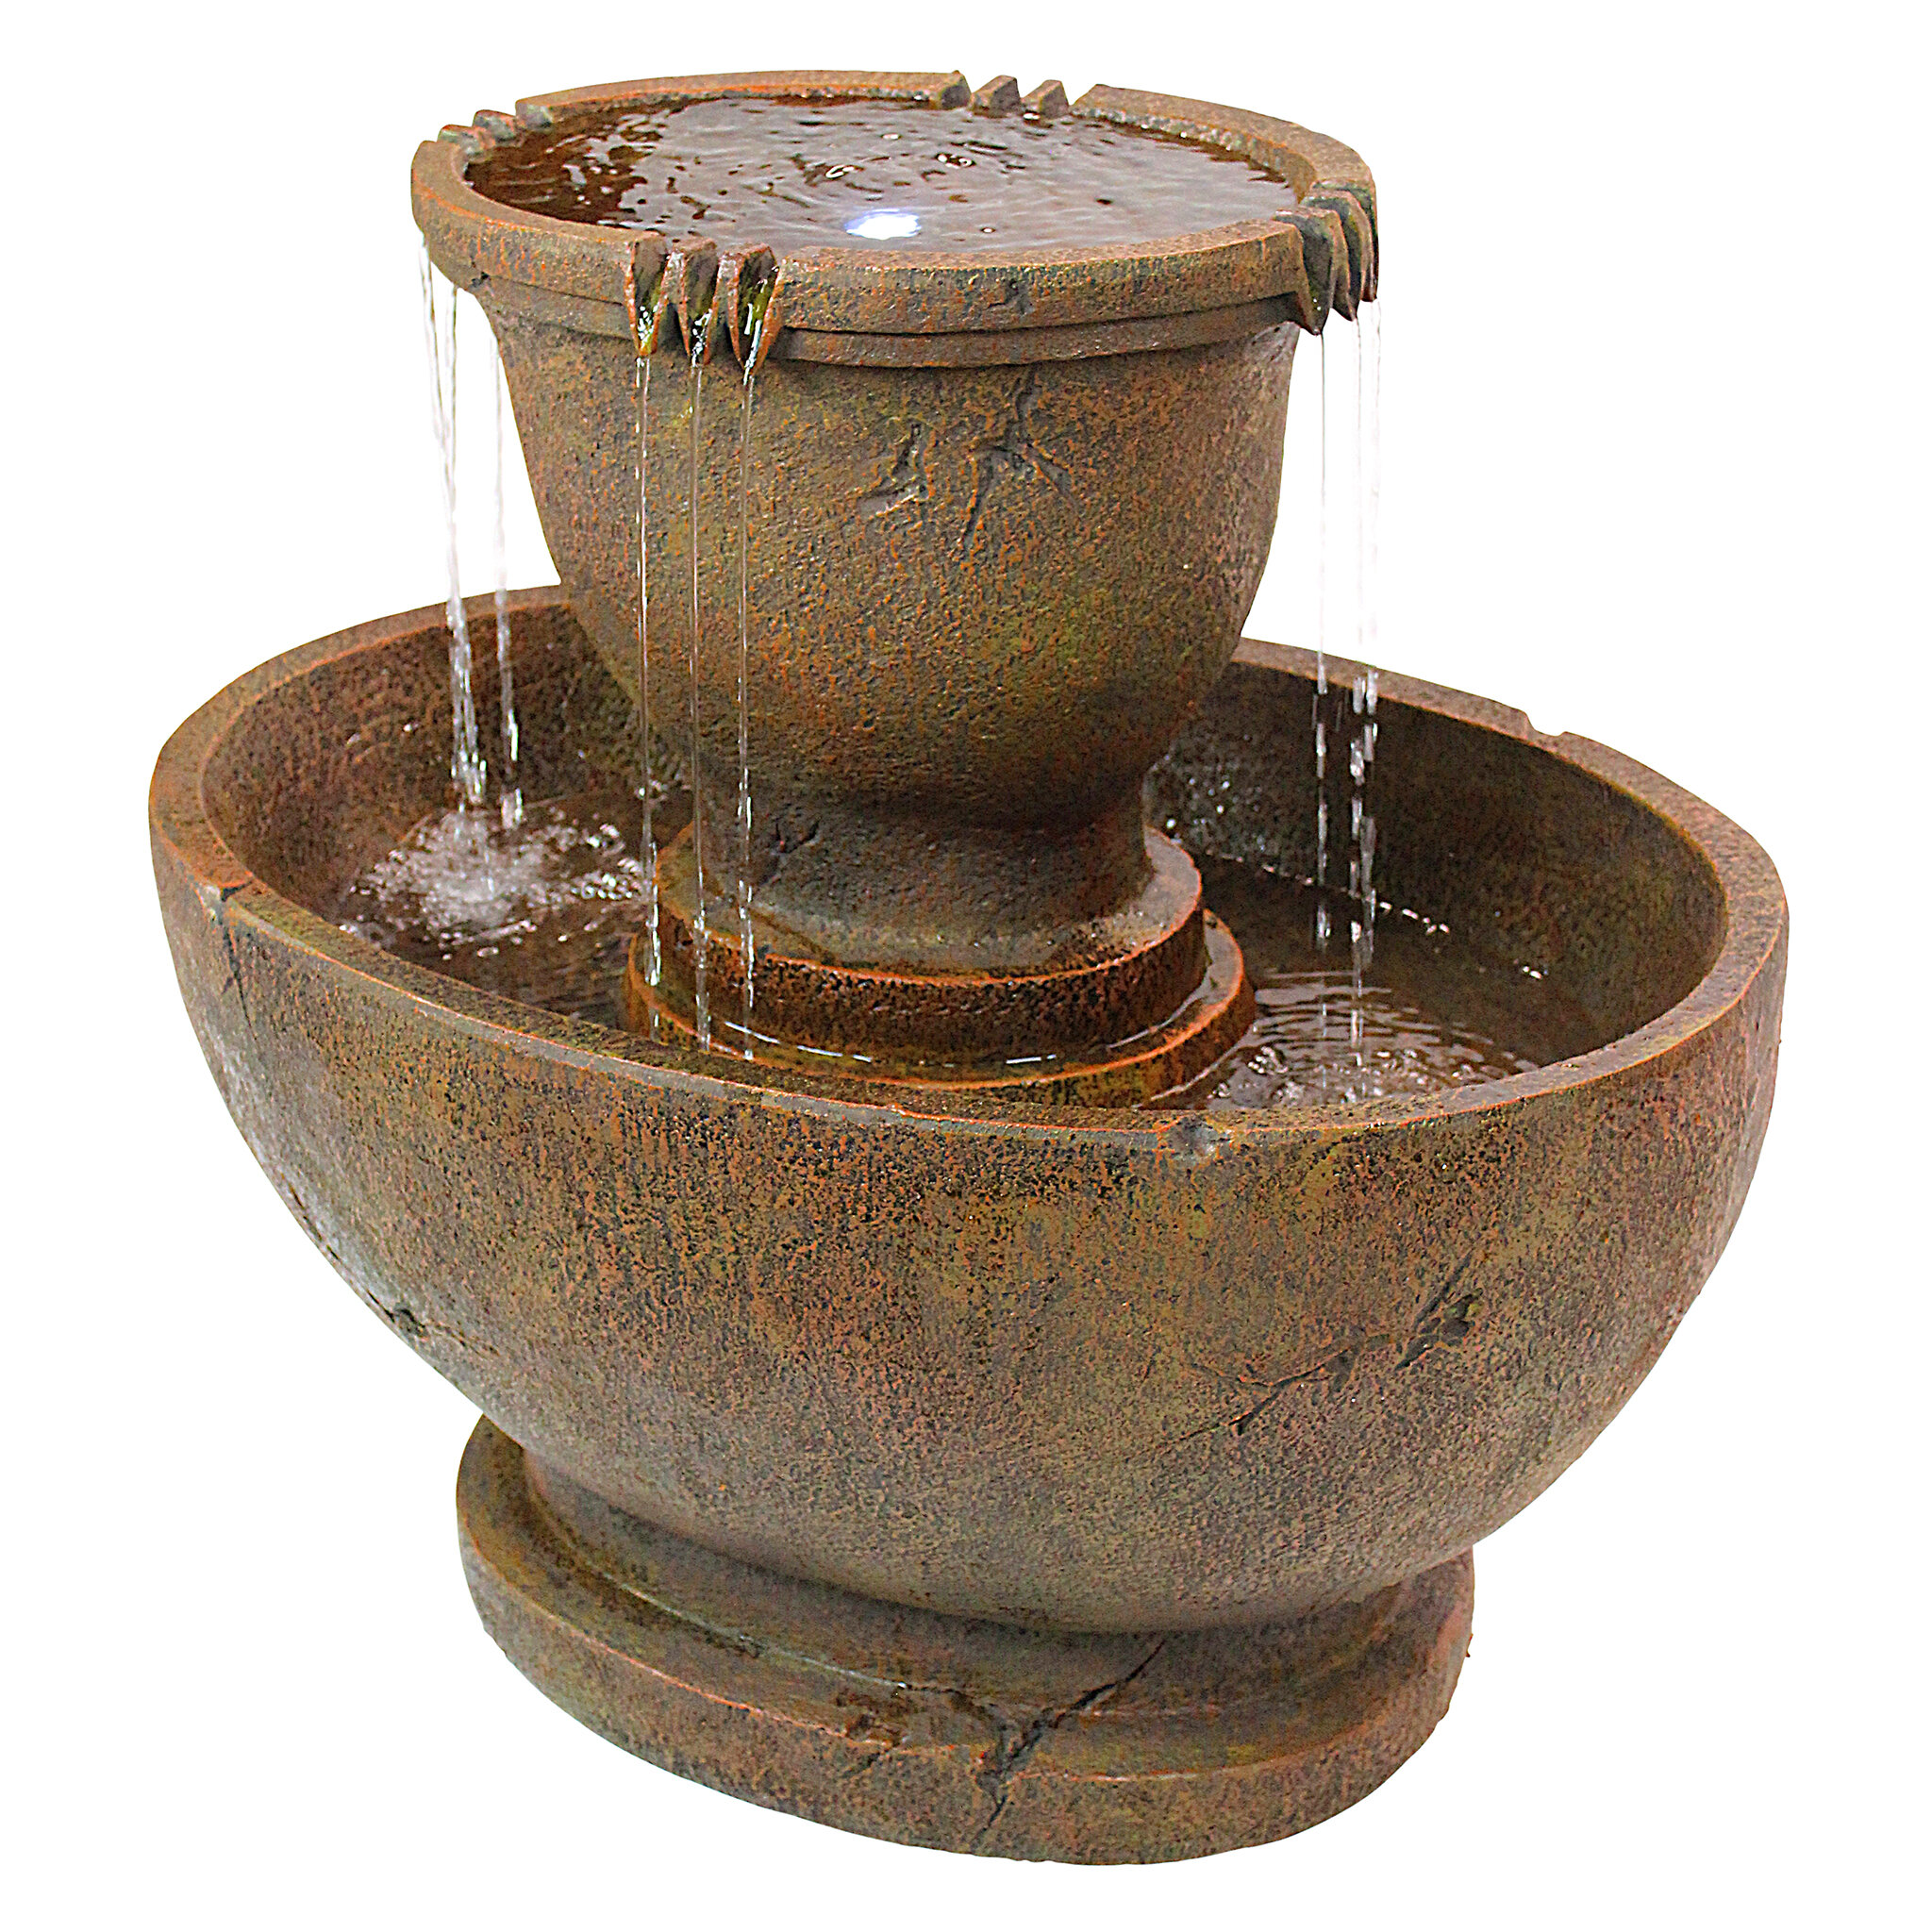 fountain overstock for garden free product home outdoor fountains today level sale shipping peaktop zen